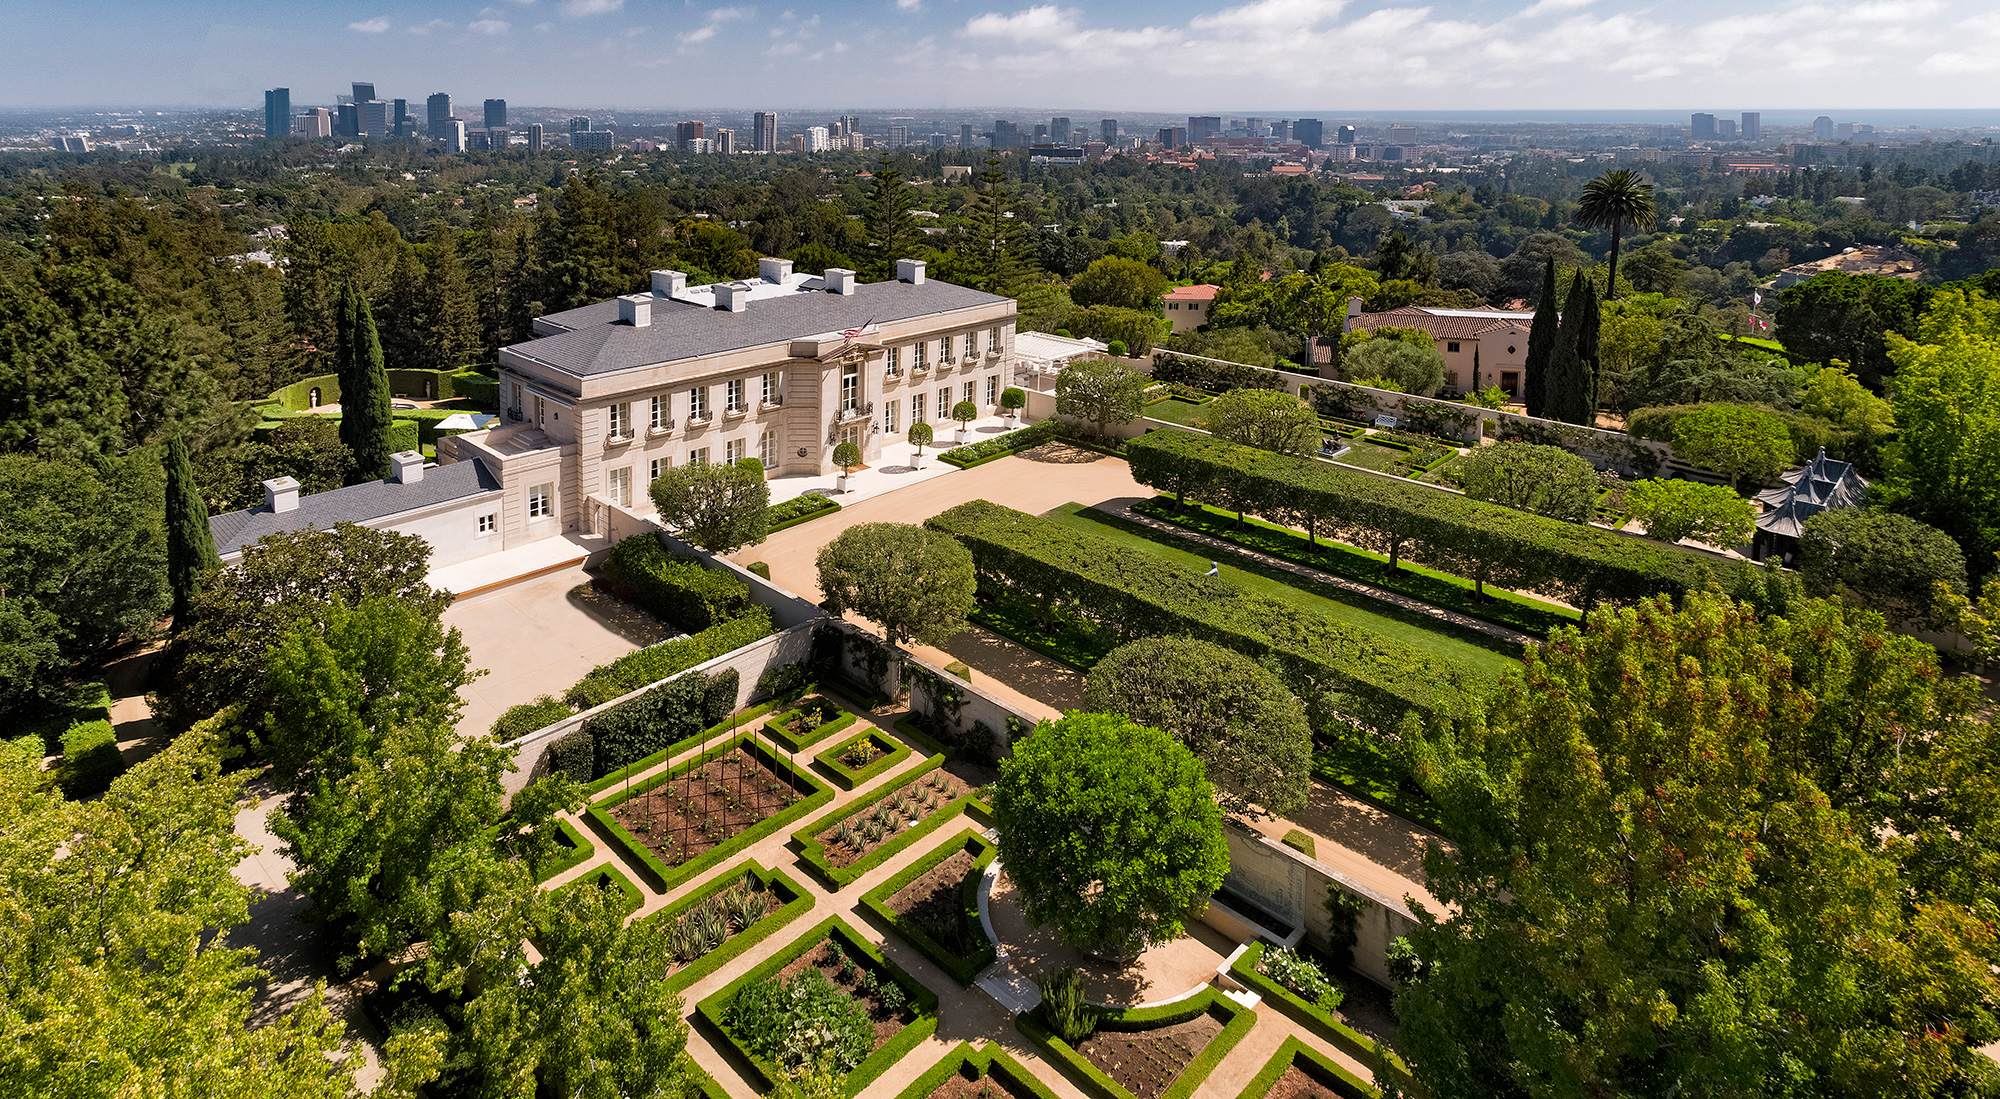 The Real Beverly Hillbillies Mansion for Sale in Bel-Air Just Got a $50 Million Price Chop most-expensive-home-in-america-exterior